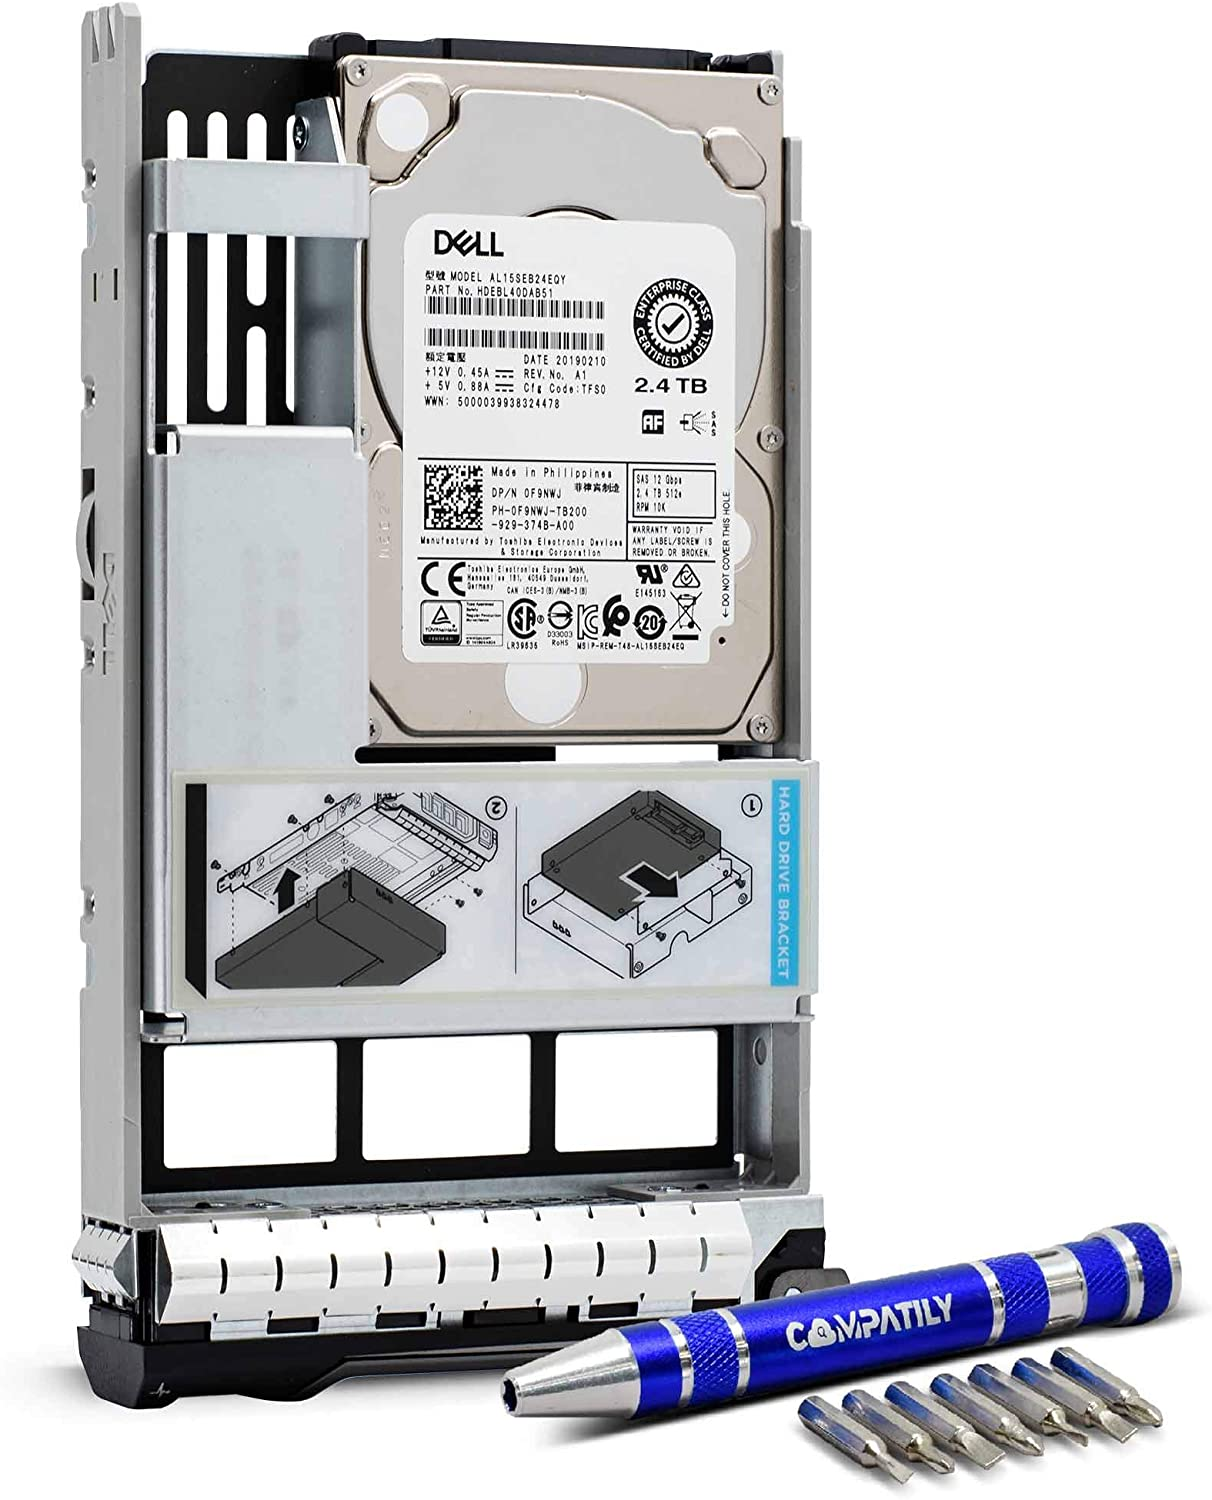 Dell/EMC 400-AUVR 2.4TB 10K RPM SAS 512e 12Gb/s Enterprise Hard Drive in 13G 3.5in Hybrid Tray for Dell EMC Servers Bundle with Compatily Screwdriver Kit